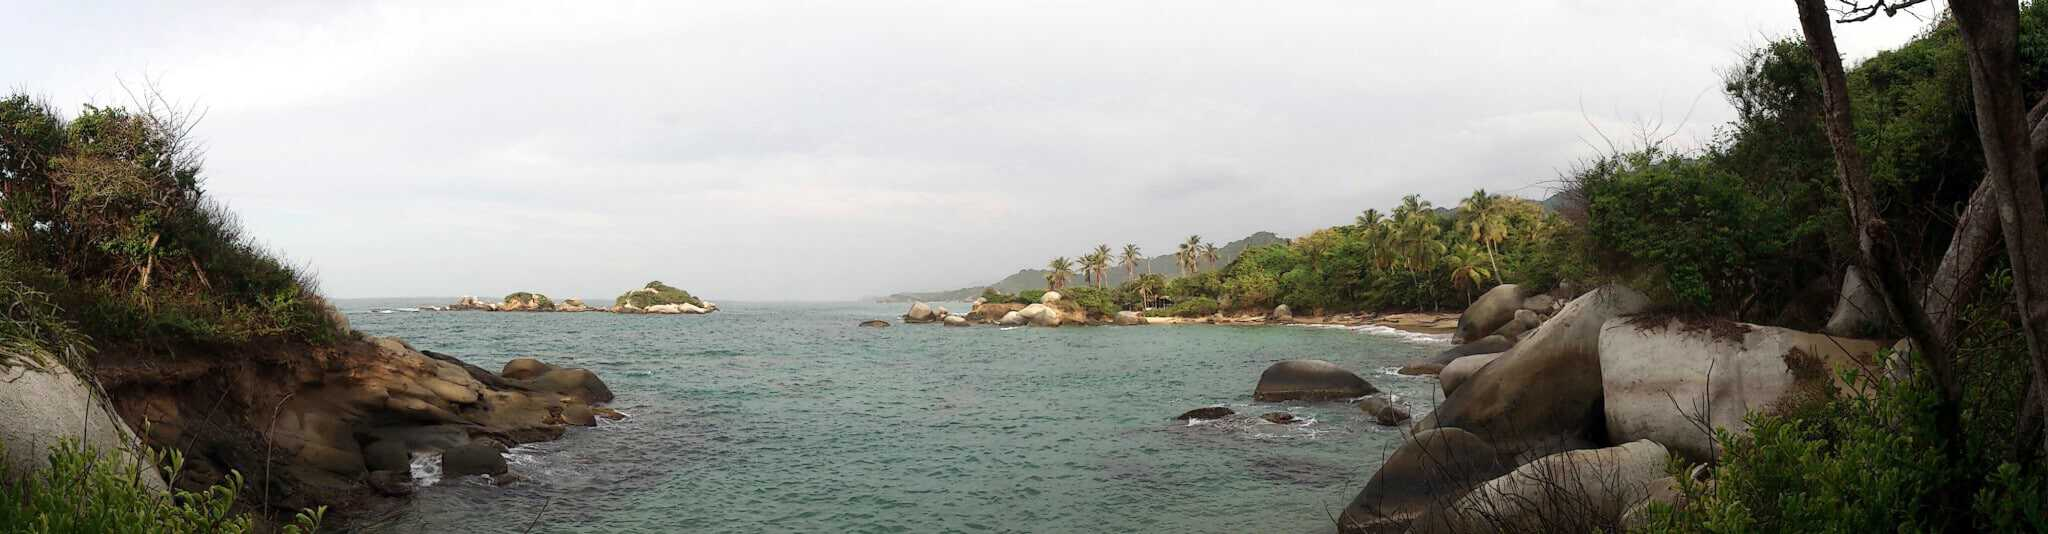 Tayrona National Park - Colombia - Only Once Today